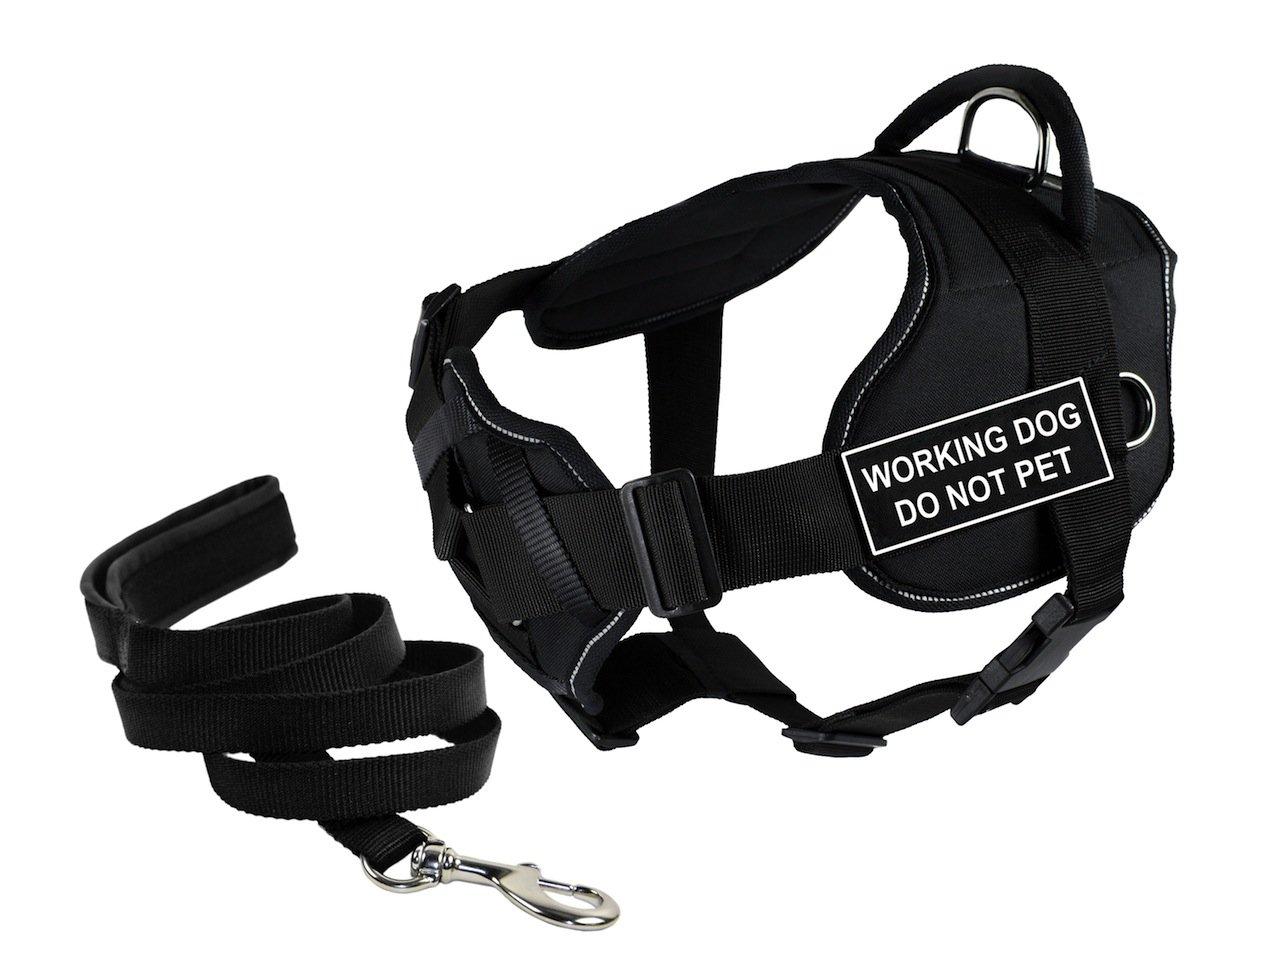 Dean & Tyler's DT Fun Chest Support ''WORKING DOG DO NOT PET'' Harness with Reflective Trim, X-Large, and 6 ft Padded Puppy Leash. by Dean & Tyler (Image #1)